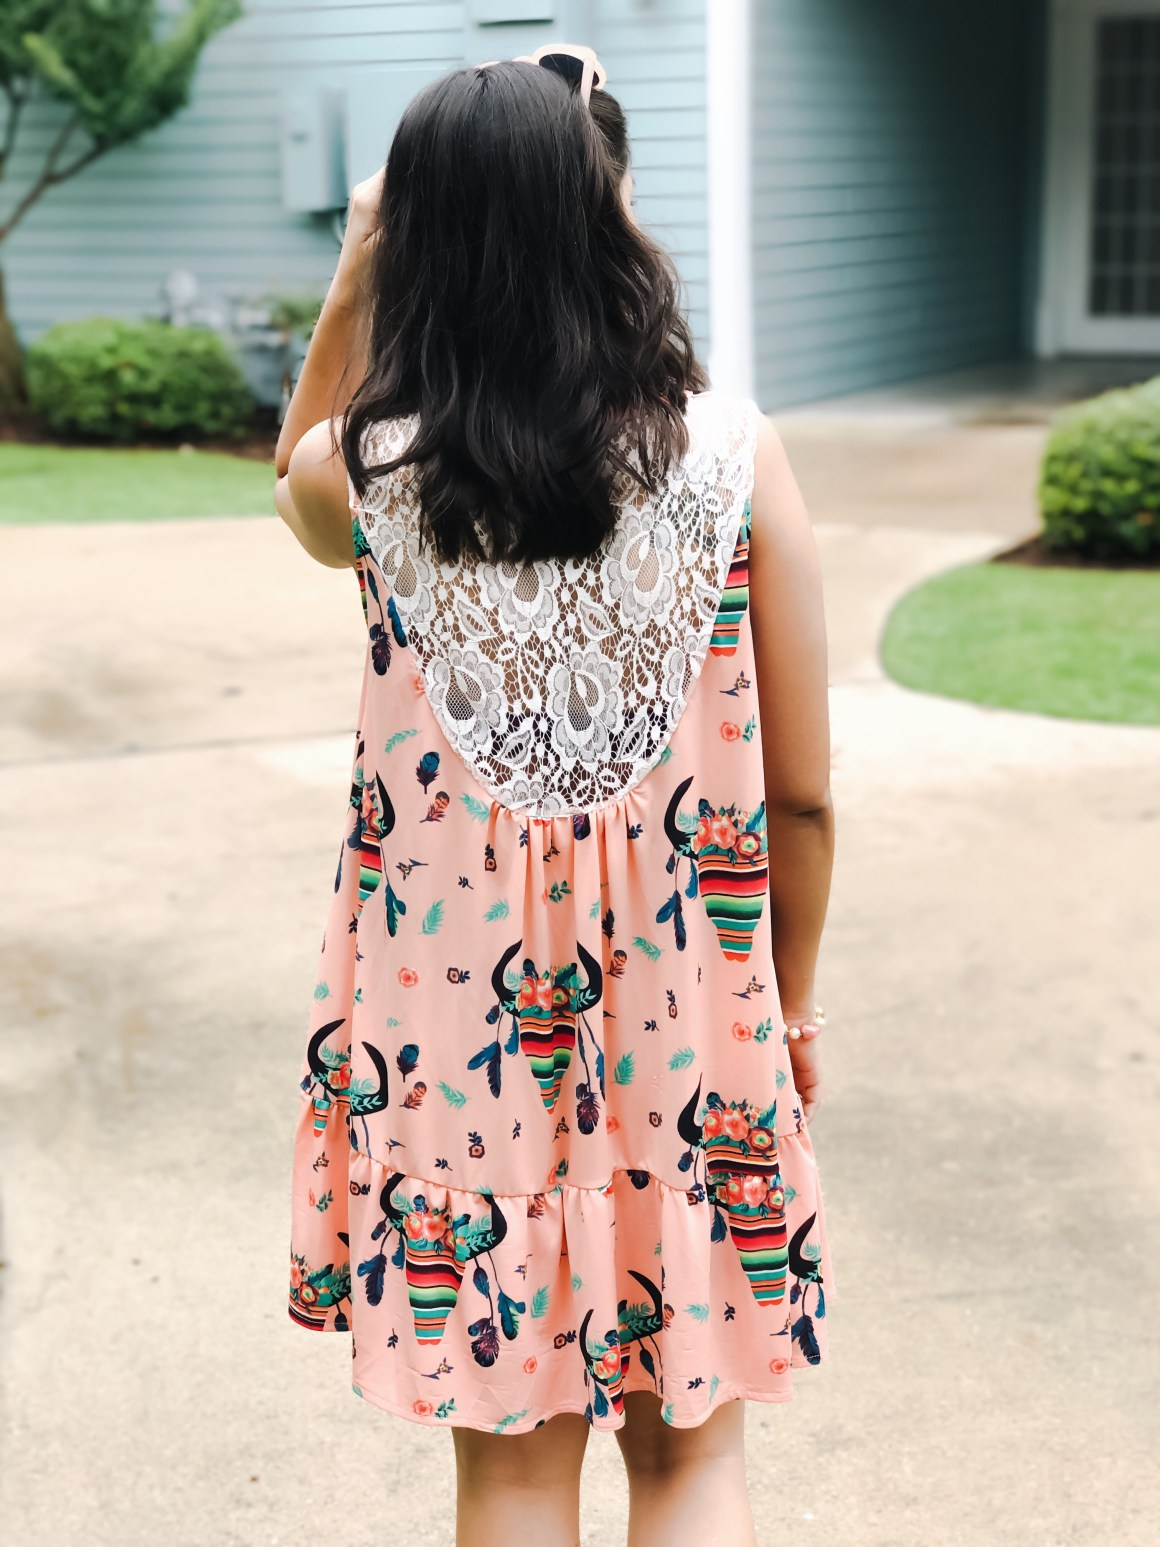 Quirky Print Dress  - Giddy Up Glamour